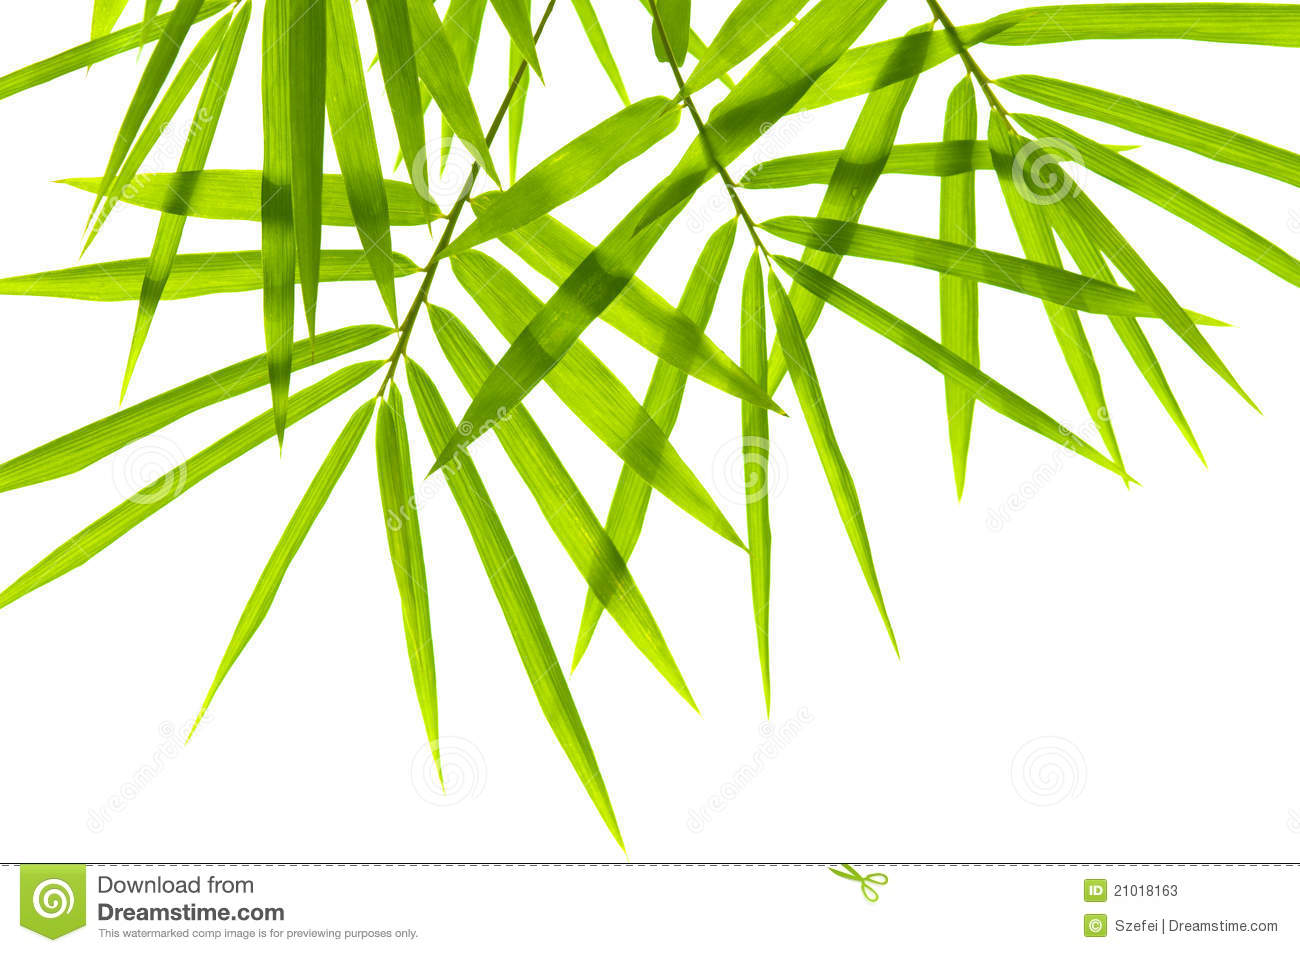 Bamboo Leaves Stock Image.